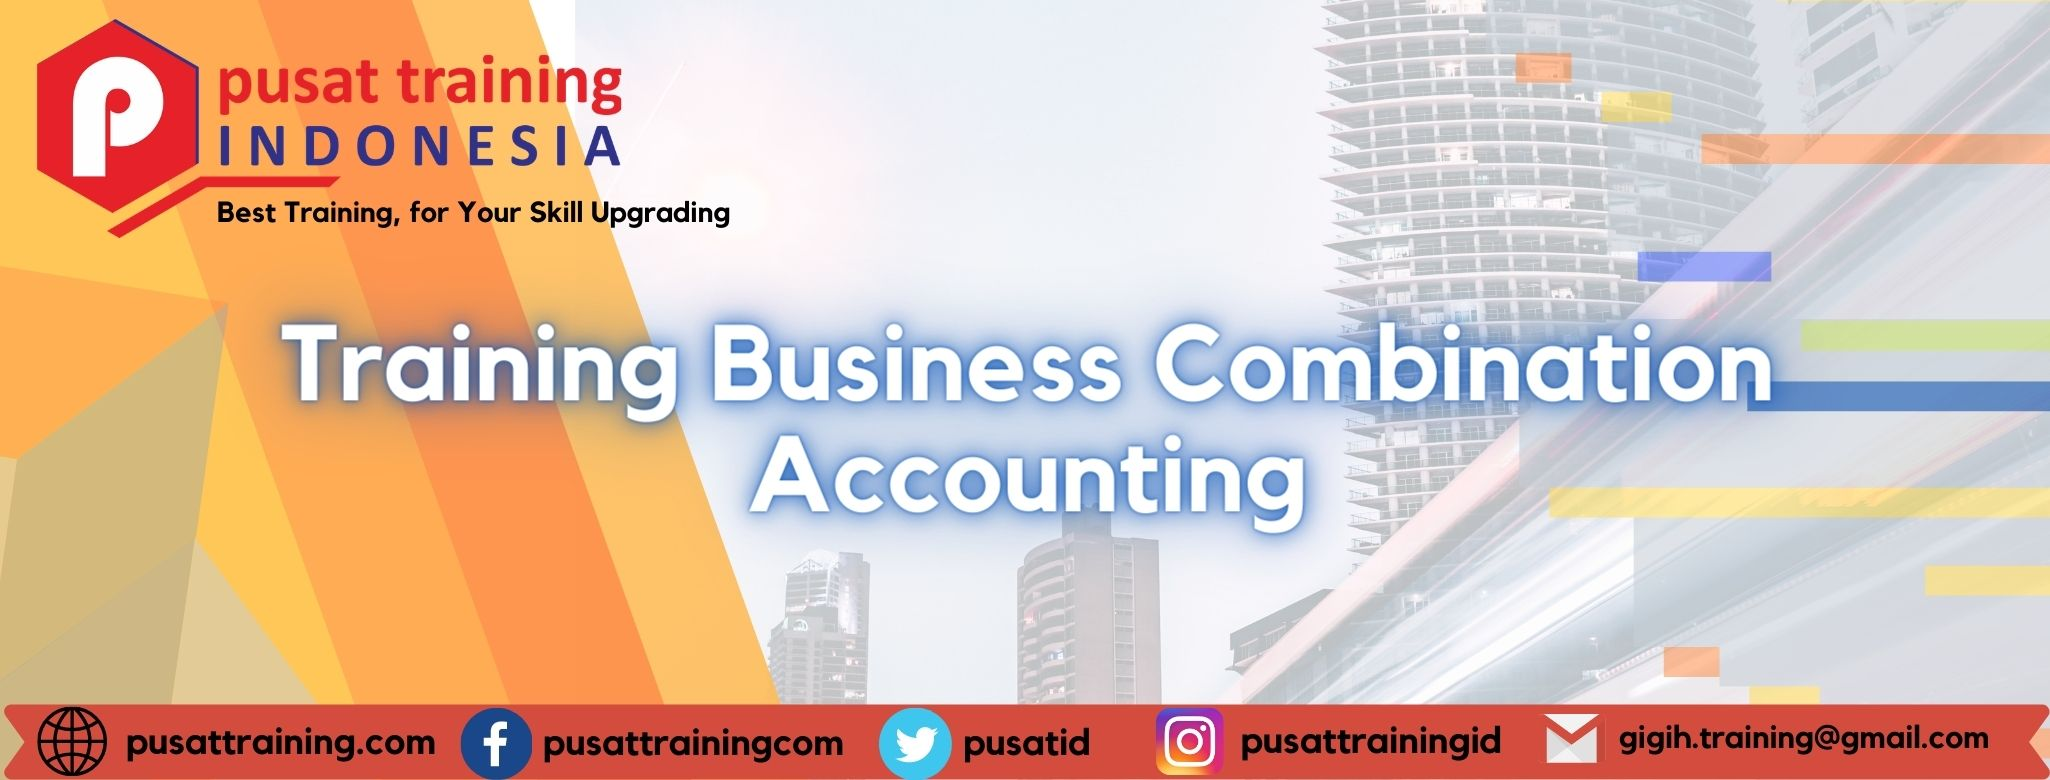 training-business-combination-accounting